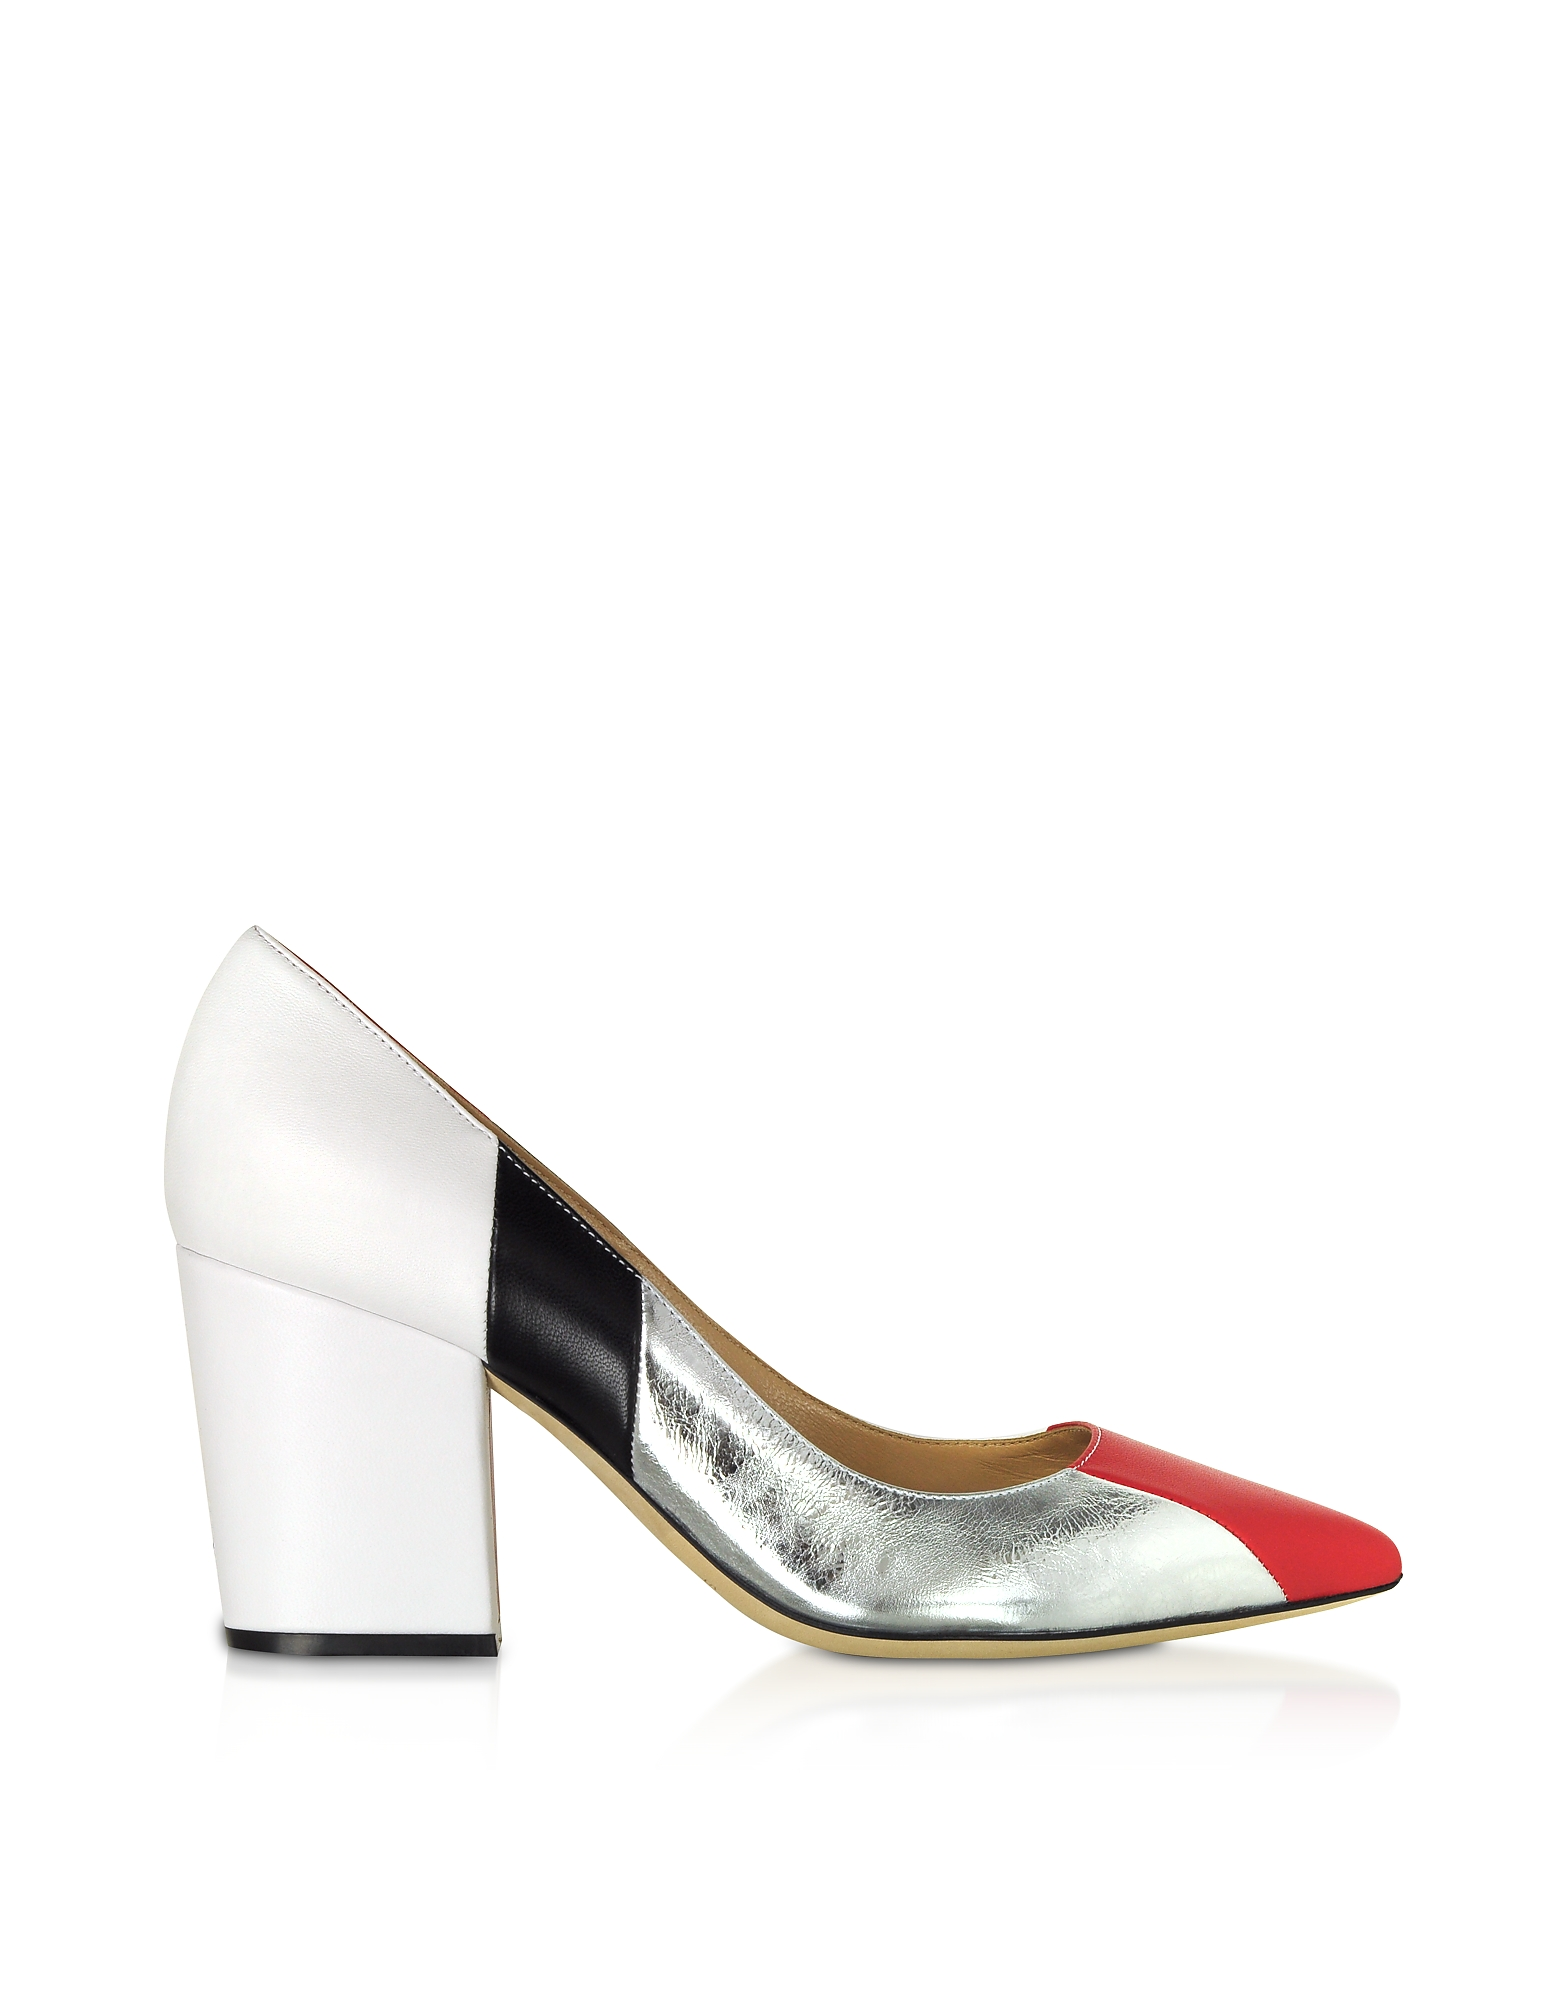 Sergio Rossi Designer Shoes, Sergio Three-Tone Crash Pumps